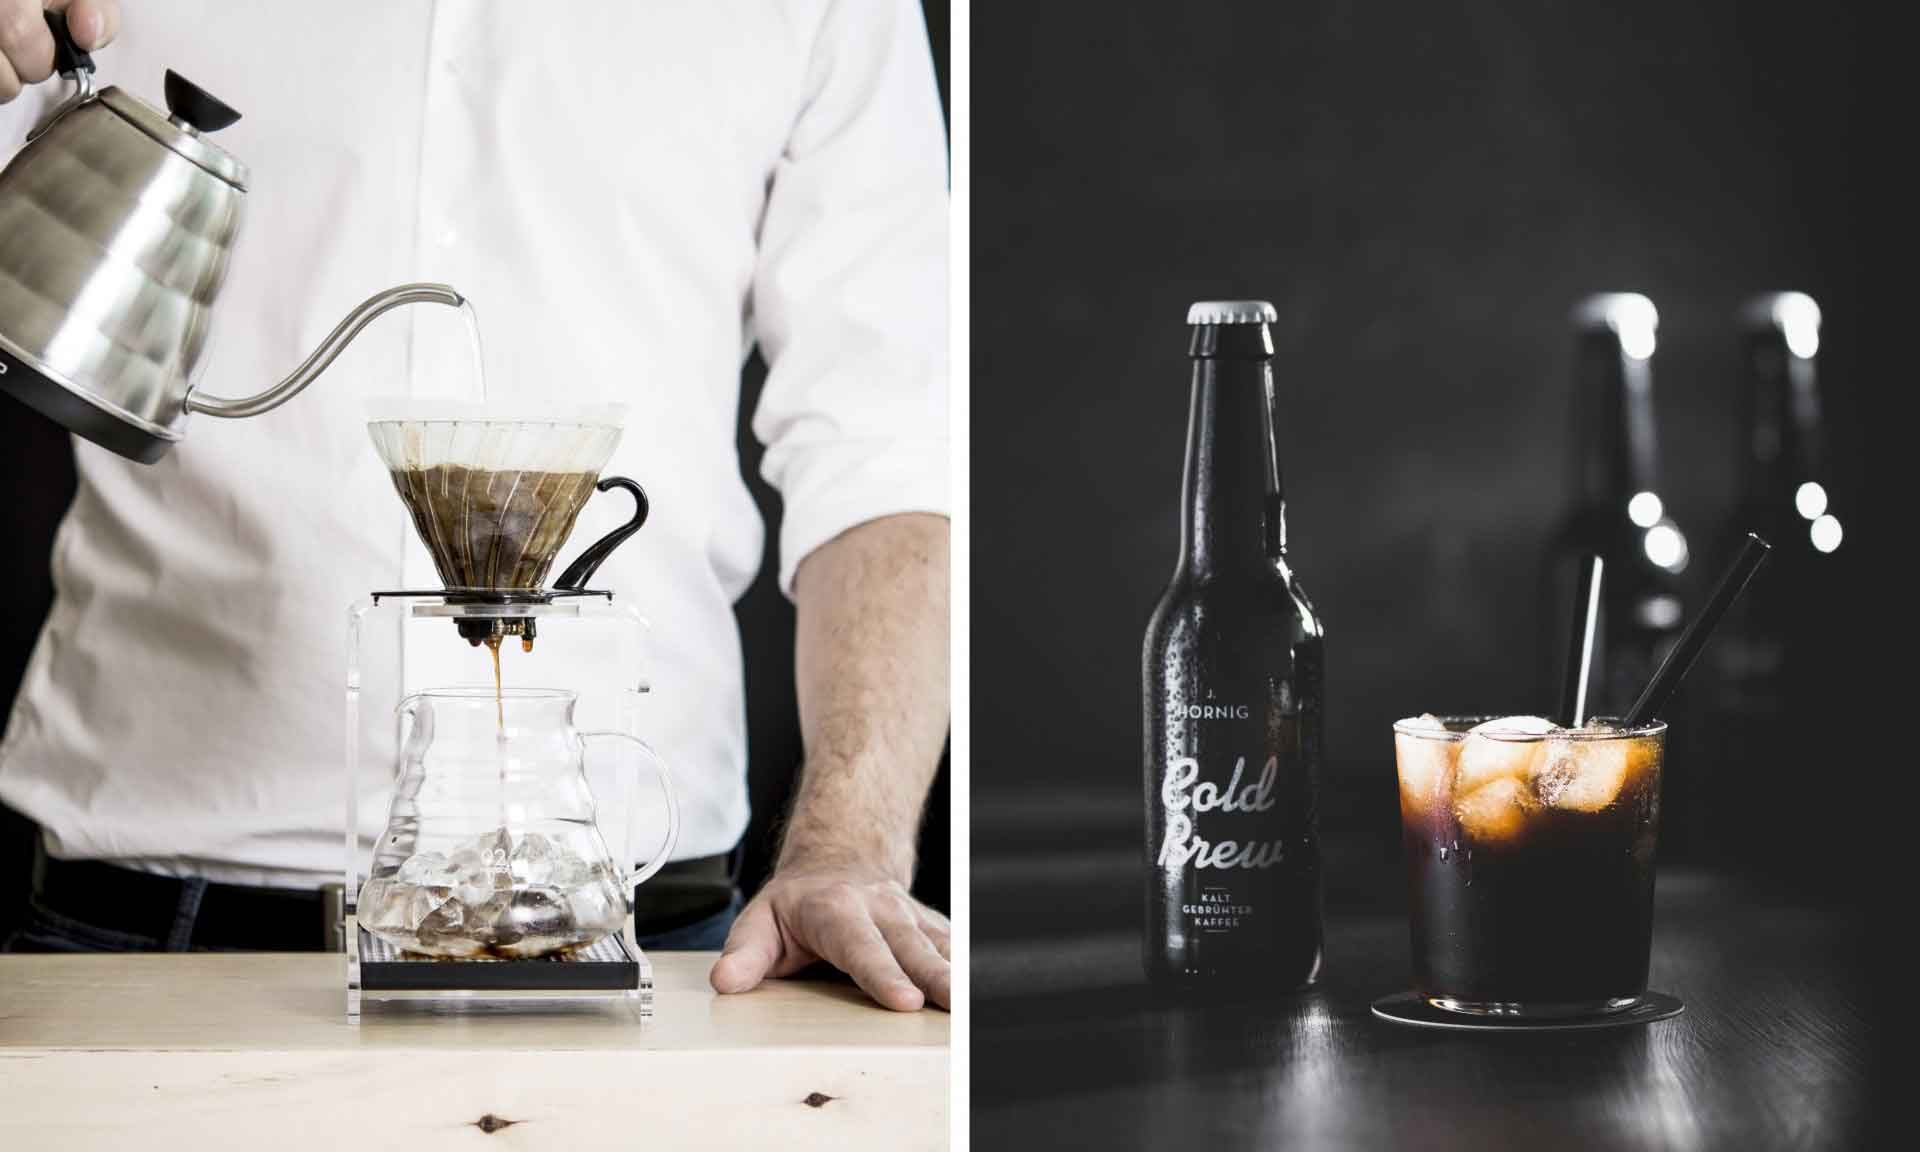 Cold Brew vs. Ide Brew | J. Hornig